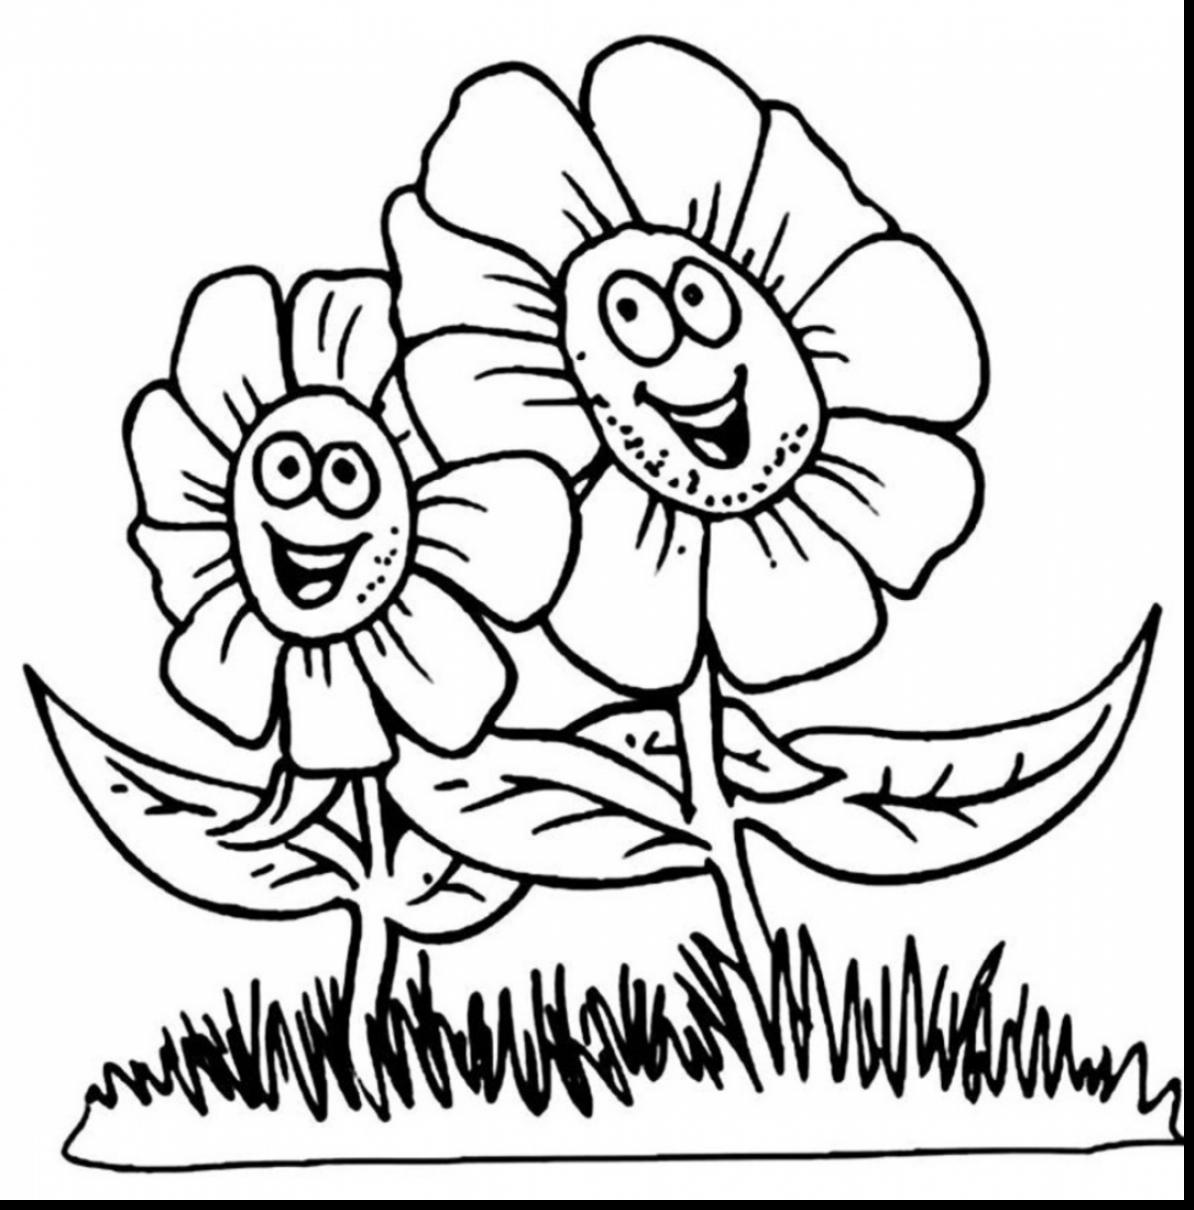 1194x1210 Spring Flowers Coloring Pages